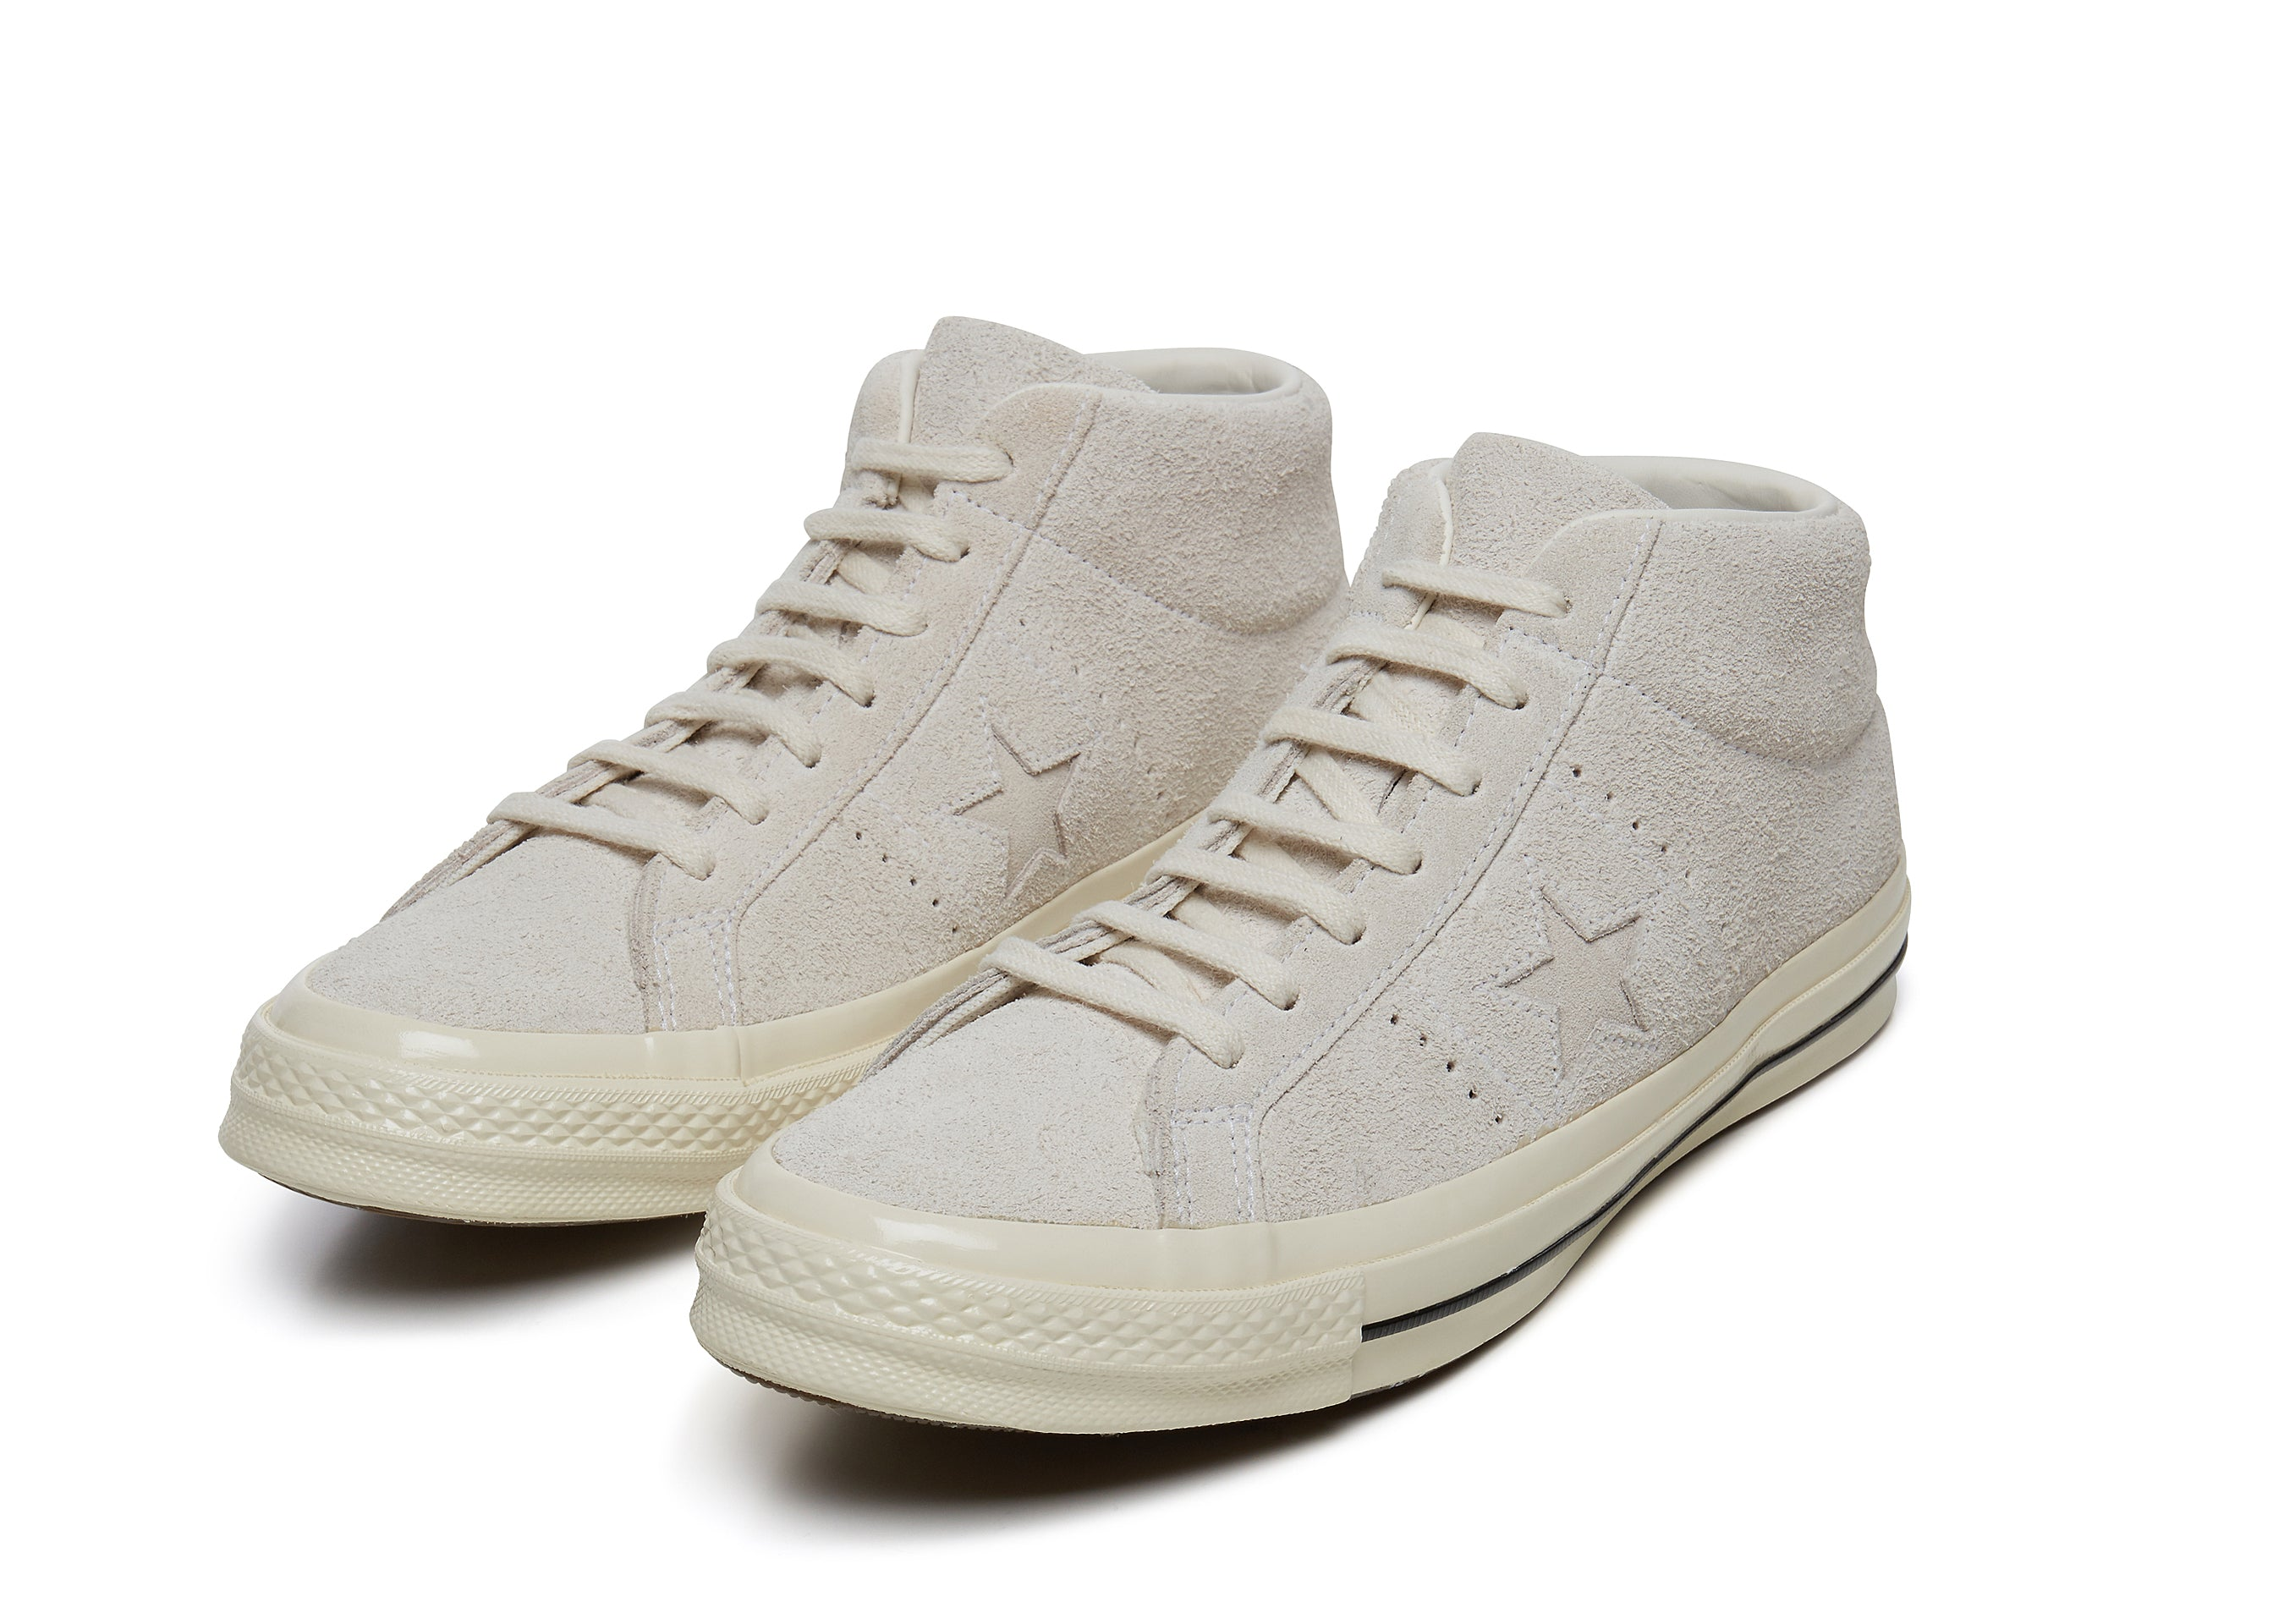 b580e8b0f264 Converse One Star  74 Mid Vintage Suede in Egret